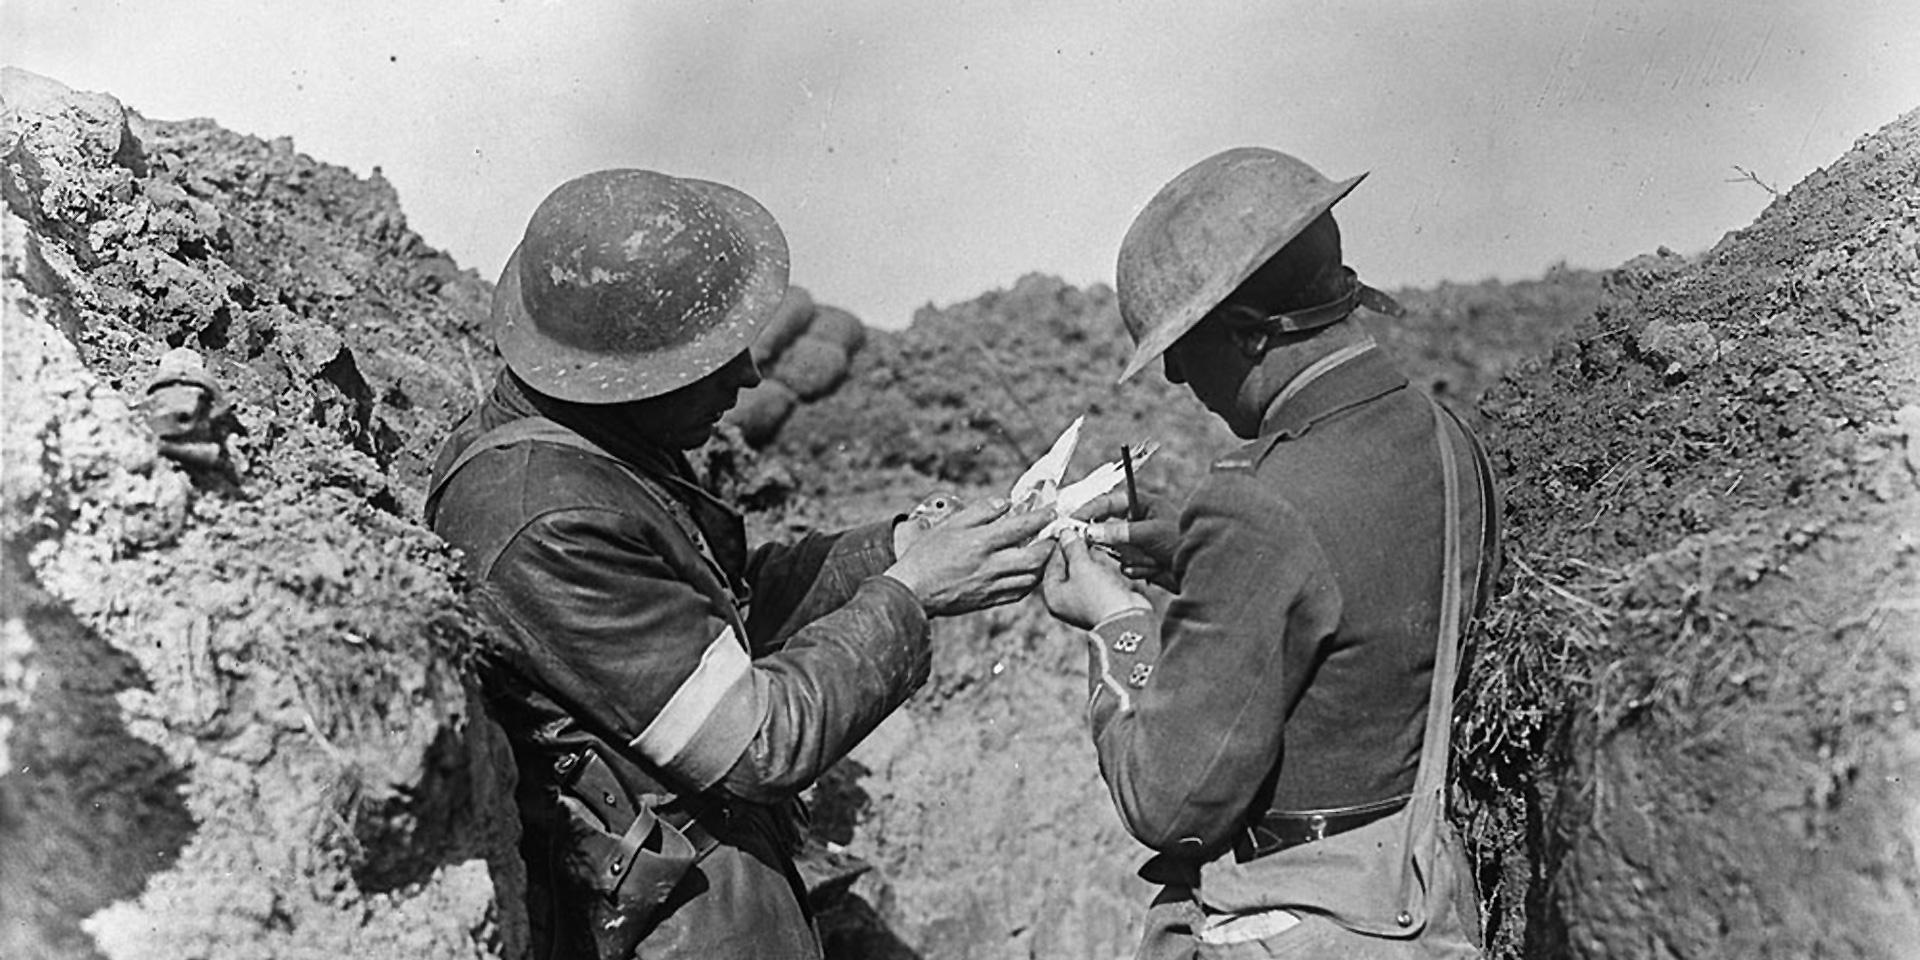 HM Pigeon Service fixing a message to a bird before leaving a trench,  1917